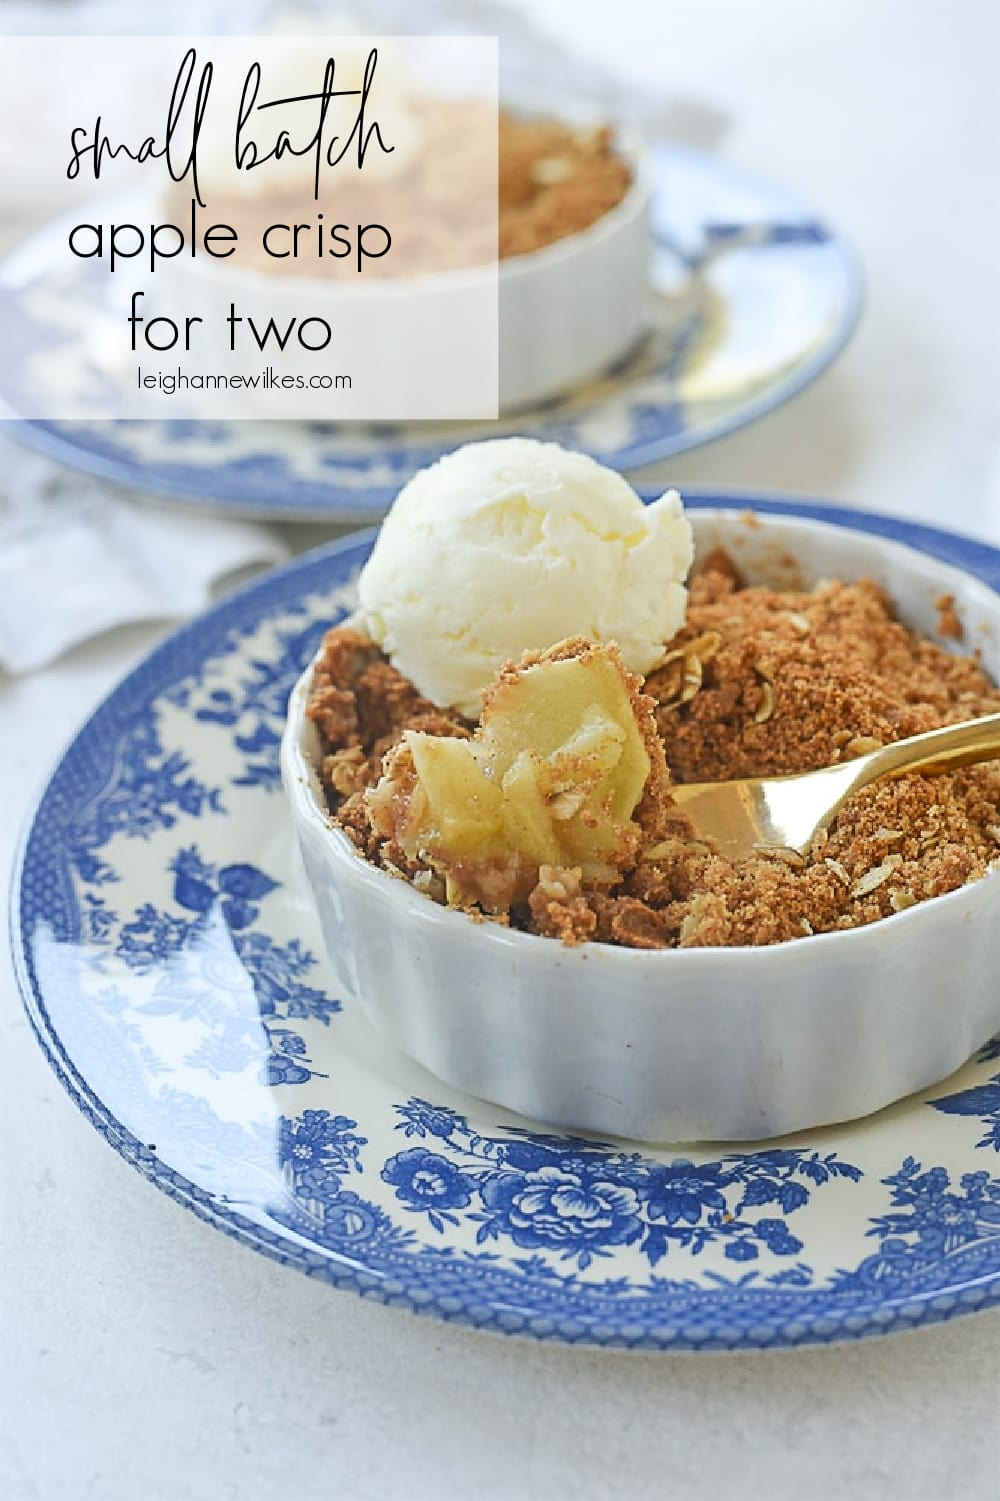 apple crisp with a scoop of ice cream